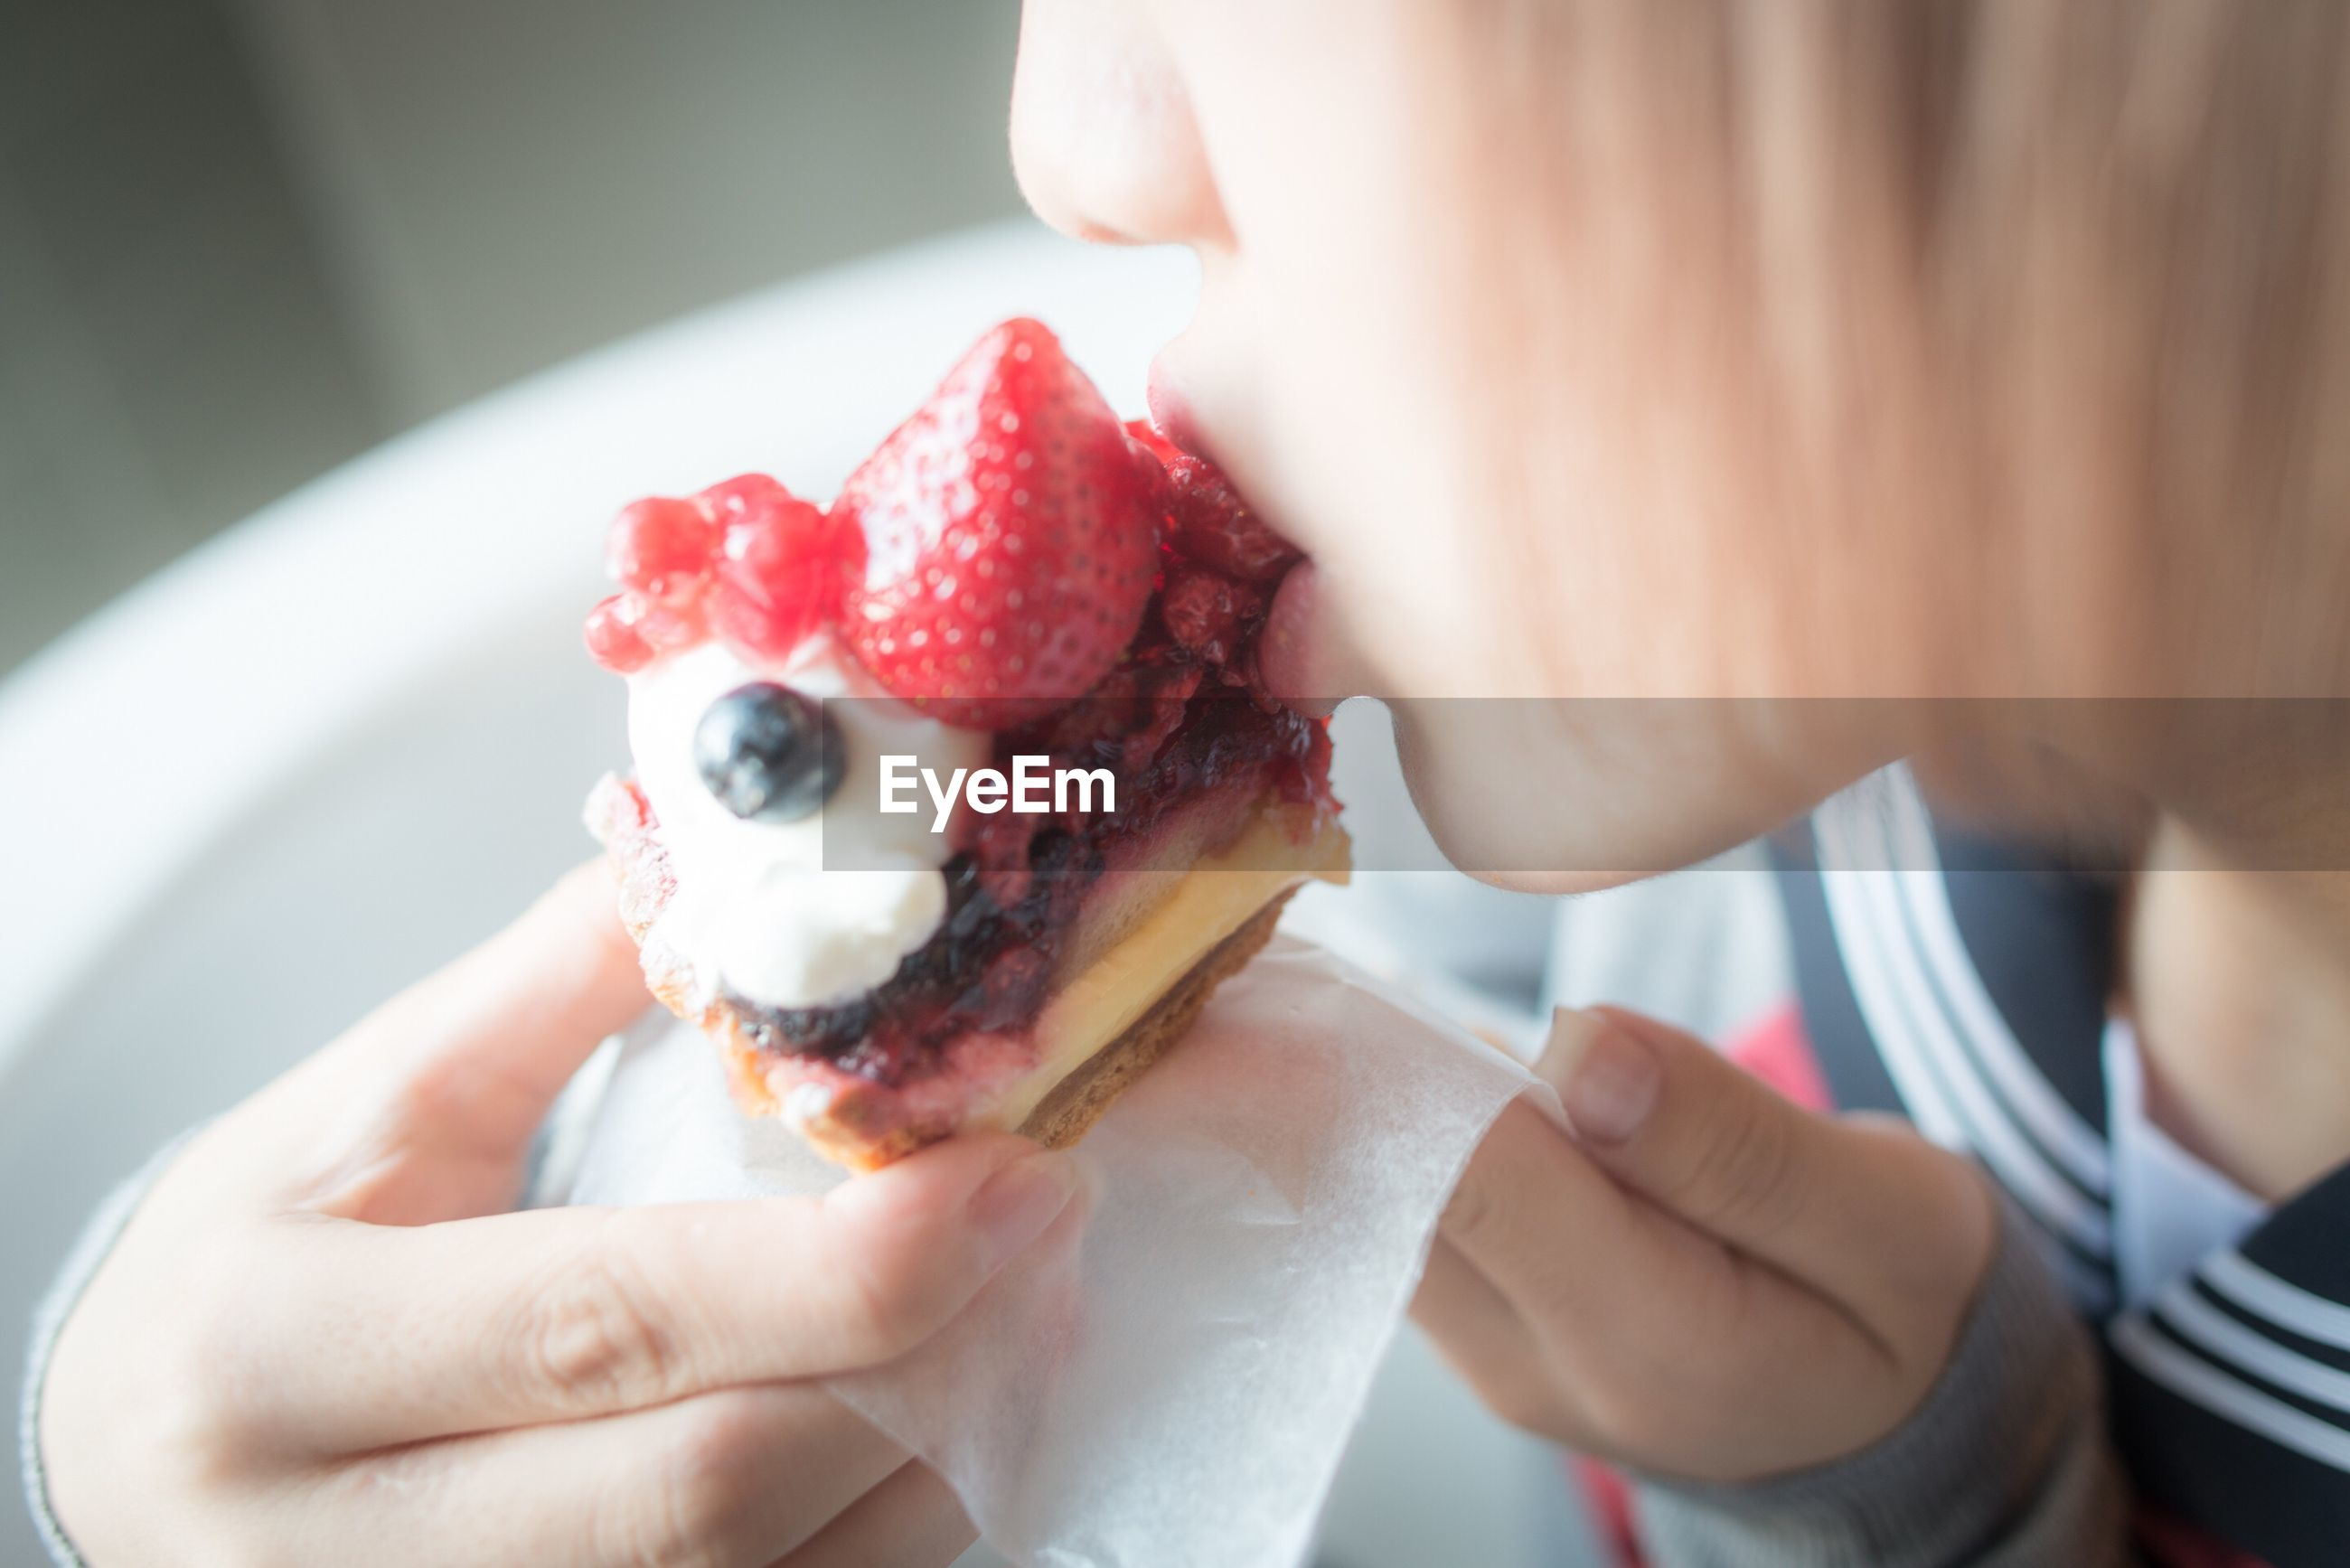 Midsection of woman eating dessert